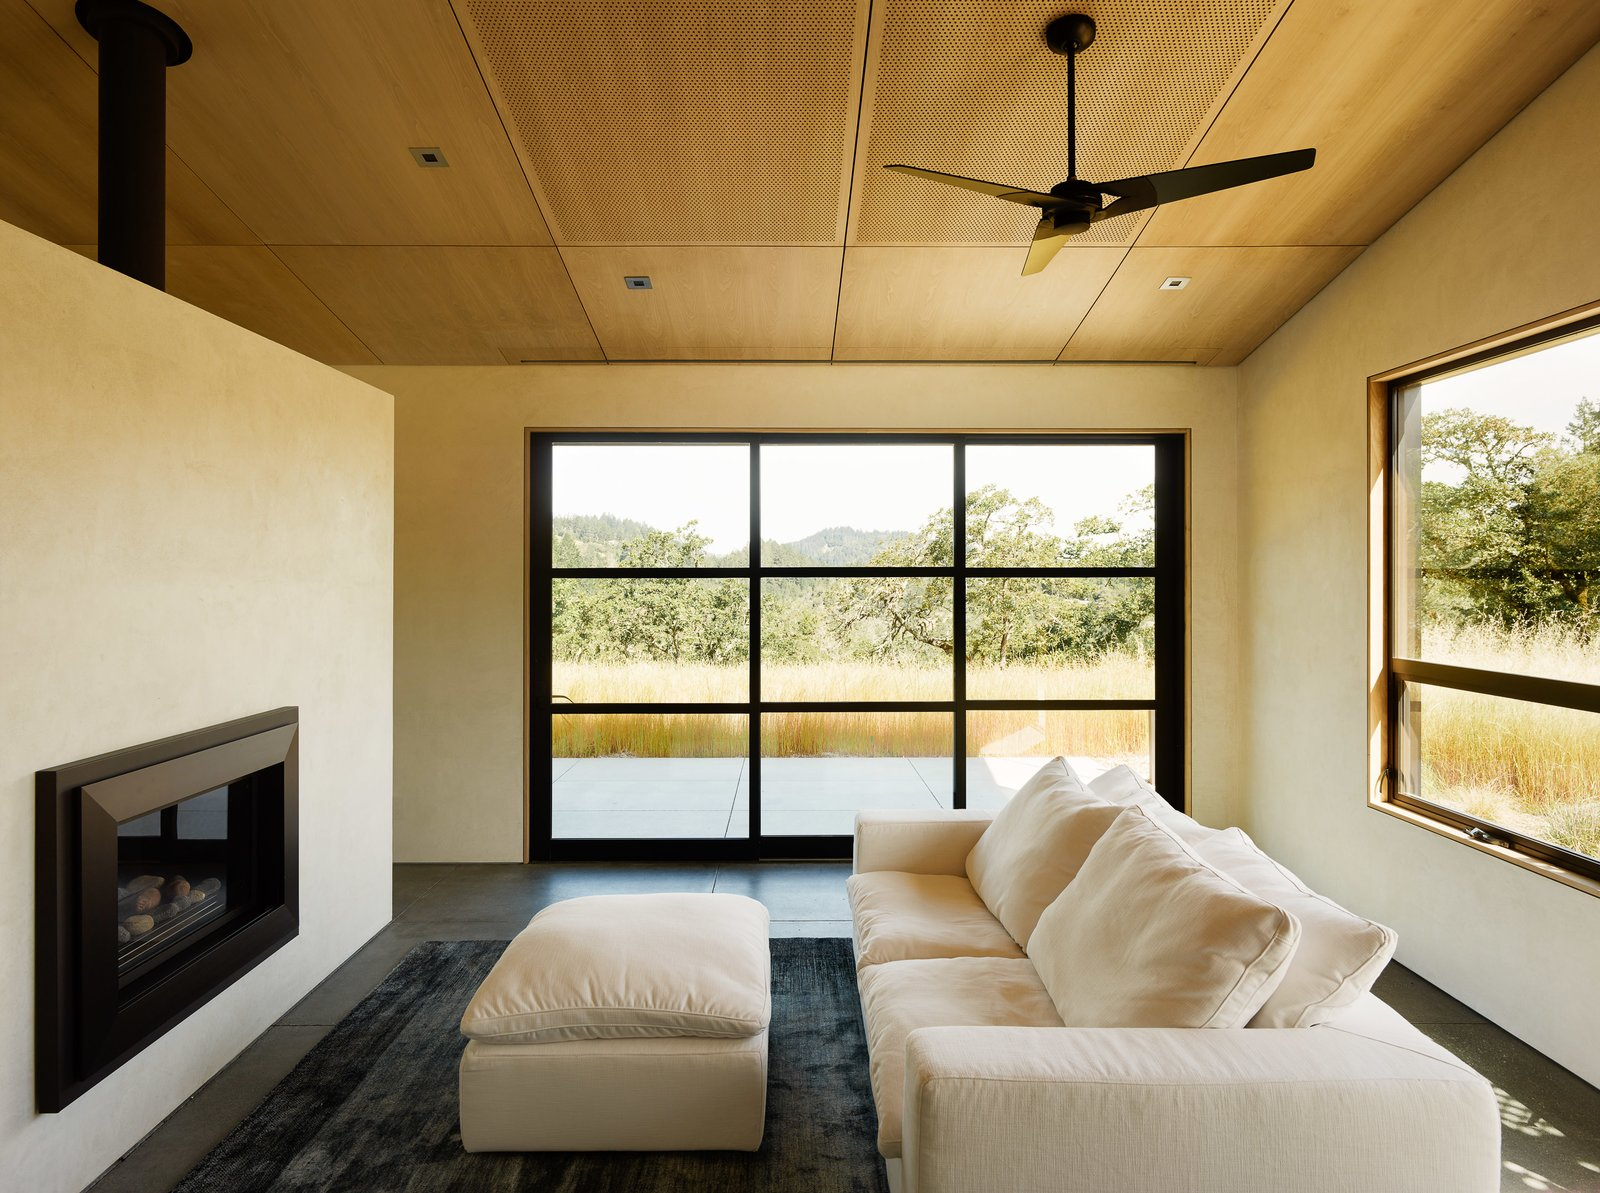 Living Room, Concrete Floor, Standard Layout Fireplace, Recessed Lighting, Sofa, Rug Floor, and Ottomans Neutral furnishings and gray floors don't distract from the views.  Photo 10 of 10 in Four Enormous Glass Doors Turn This Northern California Home Into an Outdoor Pavilion from Sonoma Wine Country I